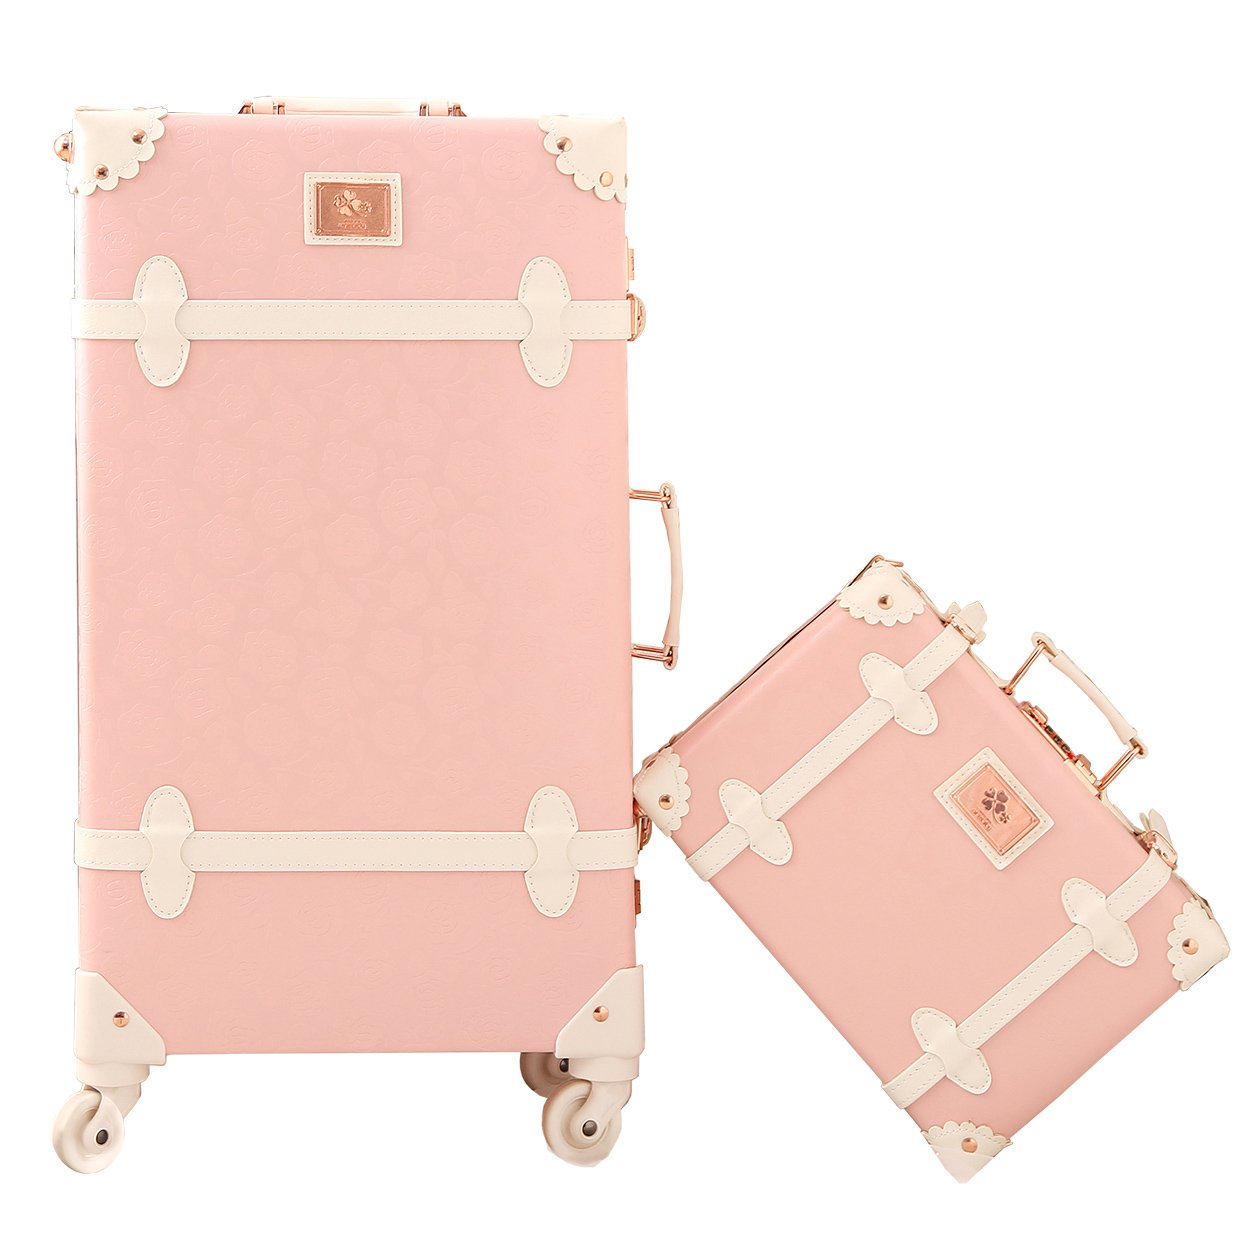 d5ce192ad5ec Travel Vintage Luggage Sets Cute Trolley Suitcases Set Lightweight Trunk  Retro Style for Women Princess Pink 26